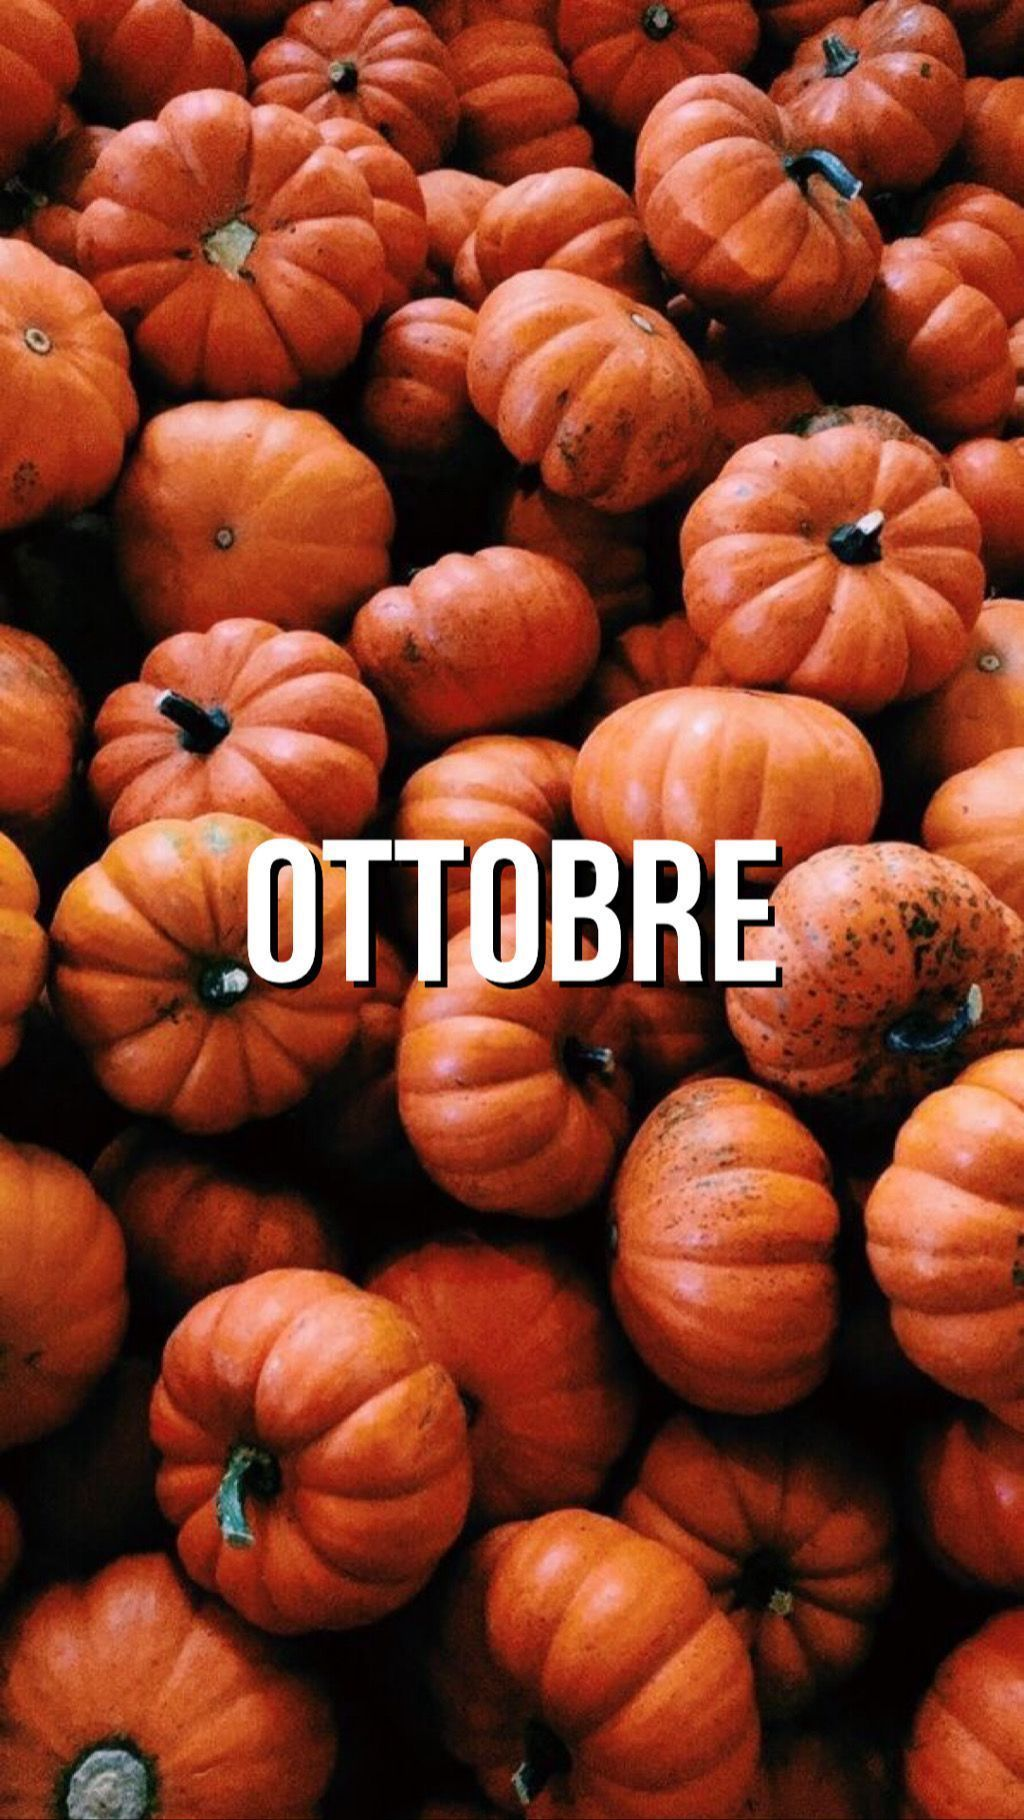 october wallpaper ???? #octoberwallpaper #october #ottobre #hellooctober #helloautumn #hellofall #october2019 #leaves #octobermood #autumnmood #autumnvibes #welcomeoctober #welcomeautumn #welcomefall #octoberwallpaper #wallpapers #autumnwallpaper #fallwallpaper #background #lockscreen #octoberbackground #octoberlockscreen #sfondi #sfondiiphone #iphone #octoberwallpaperiphone october wallpaper ???? #octoberwallpaper #october #ottobre #hellooctober #helloautumn #hellofall #october2019 #leaves #oct #octoberwallpaper